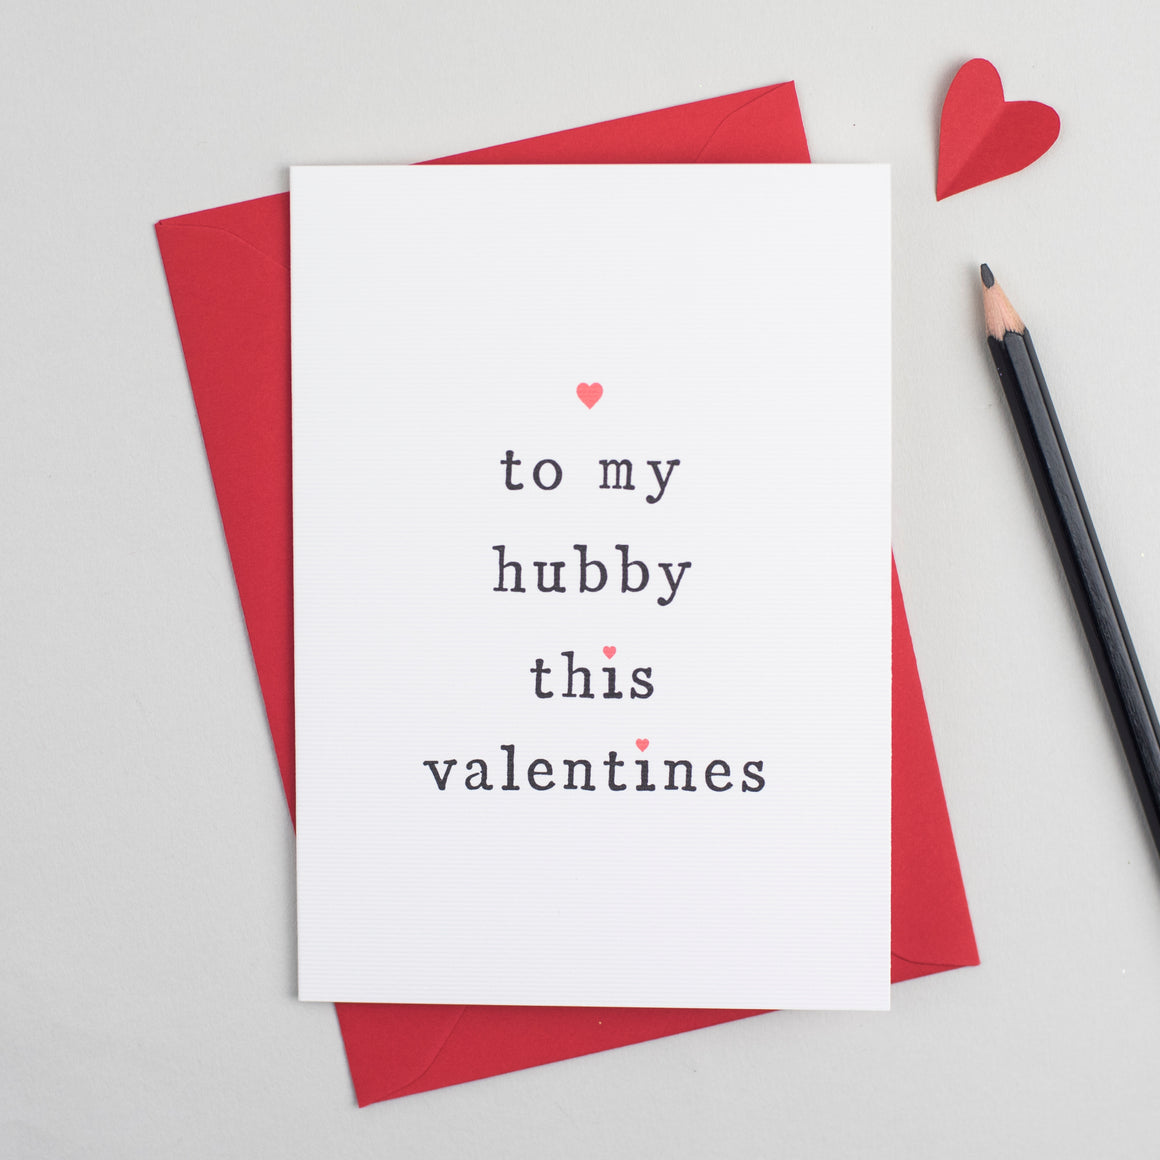 'To My Husband or Wife' Valentine's Day Card